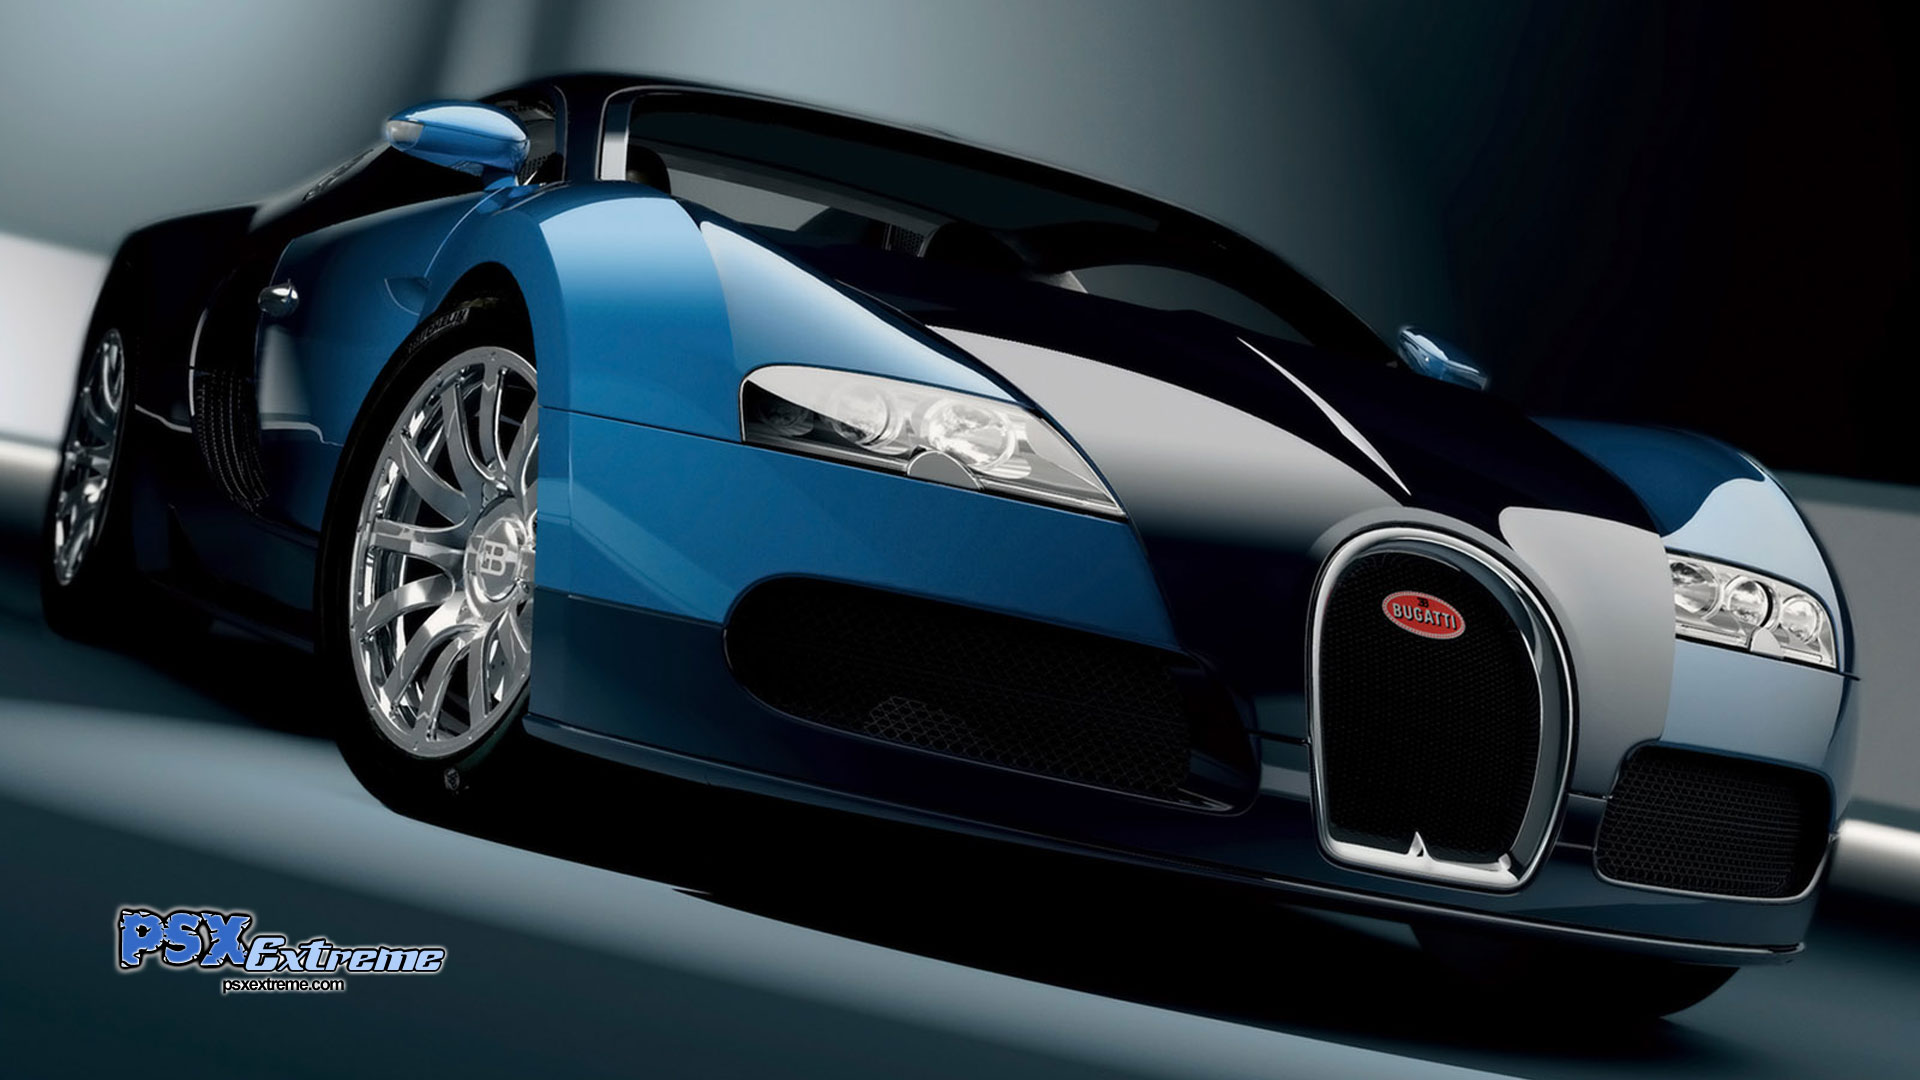 Bugatti Veyron Wallpaper Hd